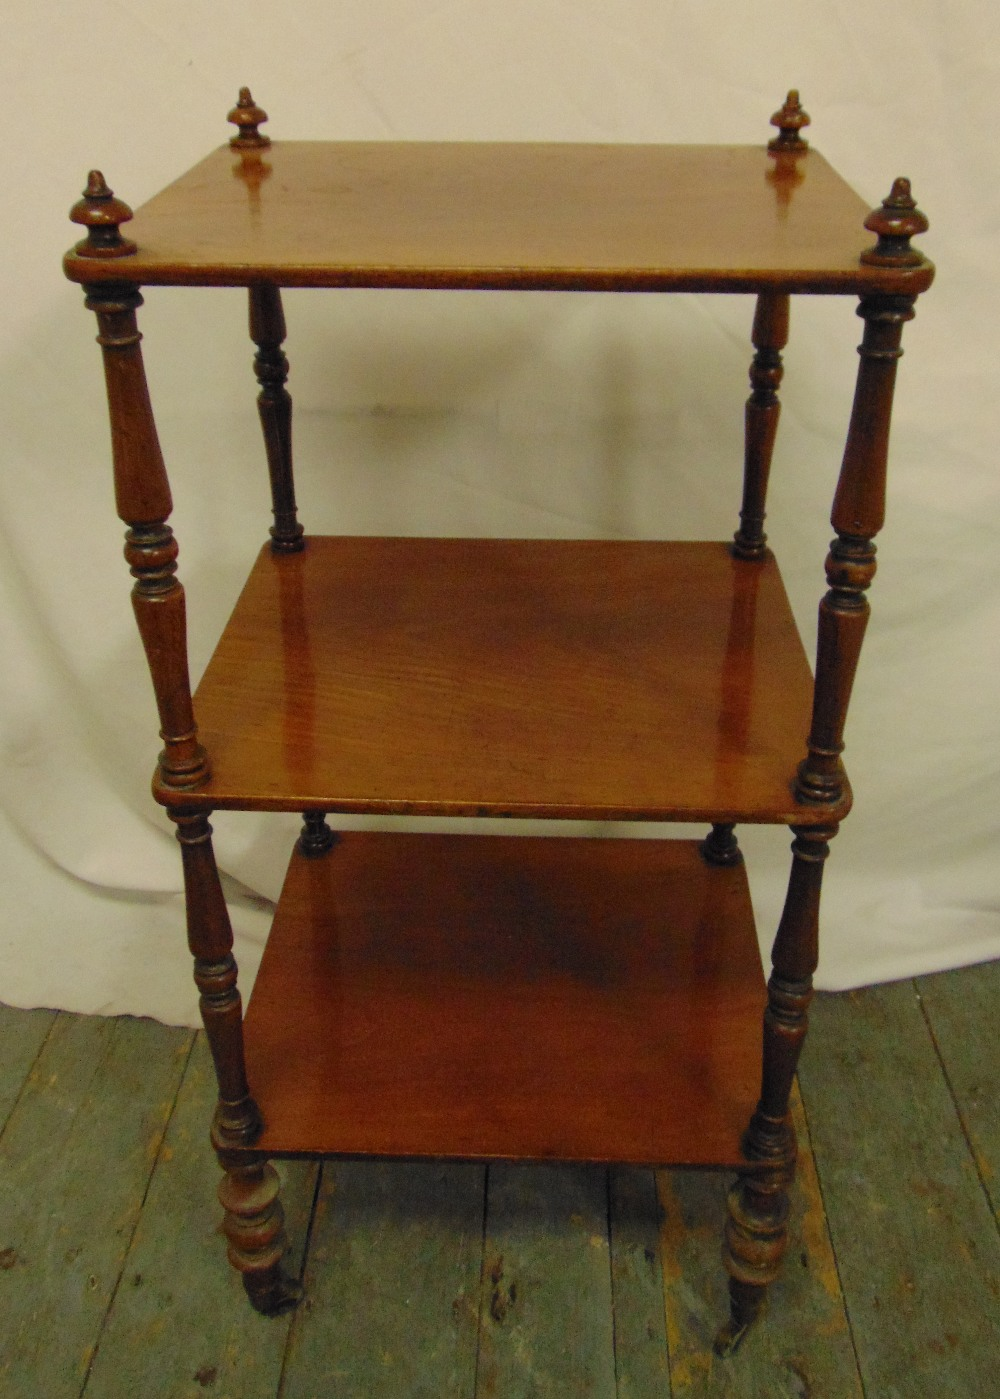 Lot 21 - A mahogany rectangular three tier whatnot, with four turned cylindrical supports, 80 x 38 x 33cm